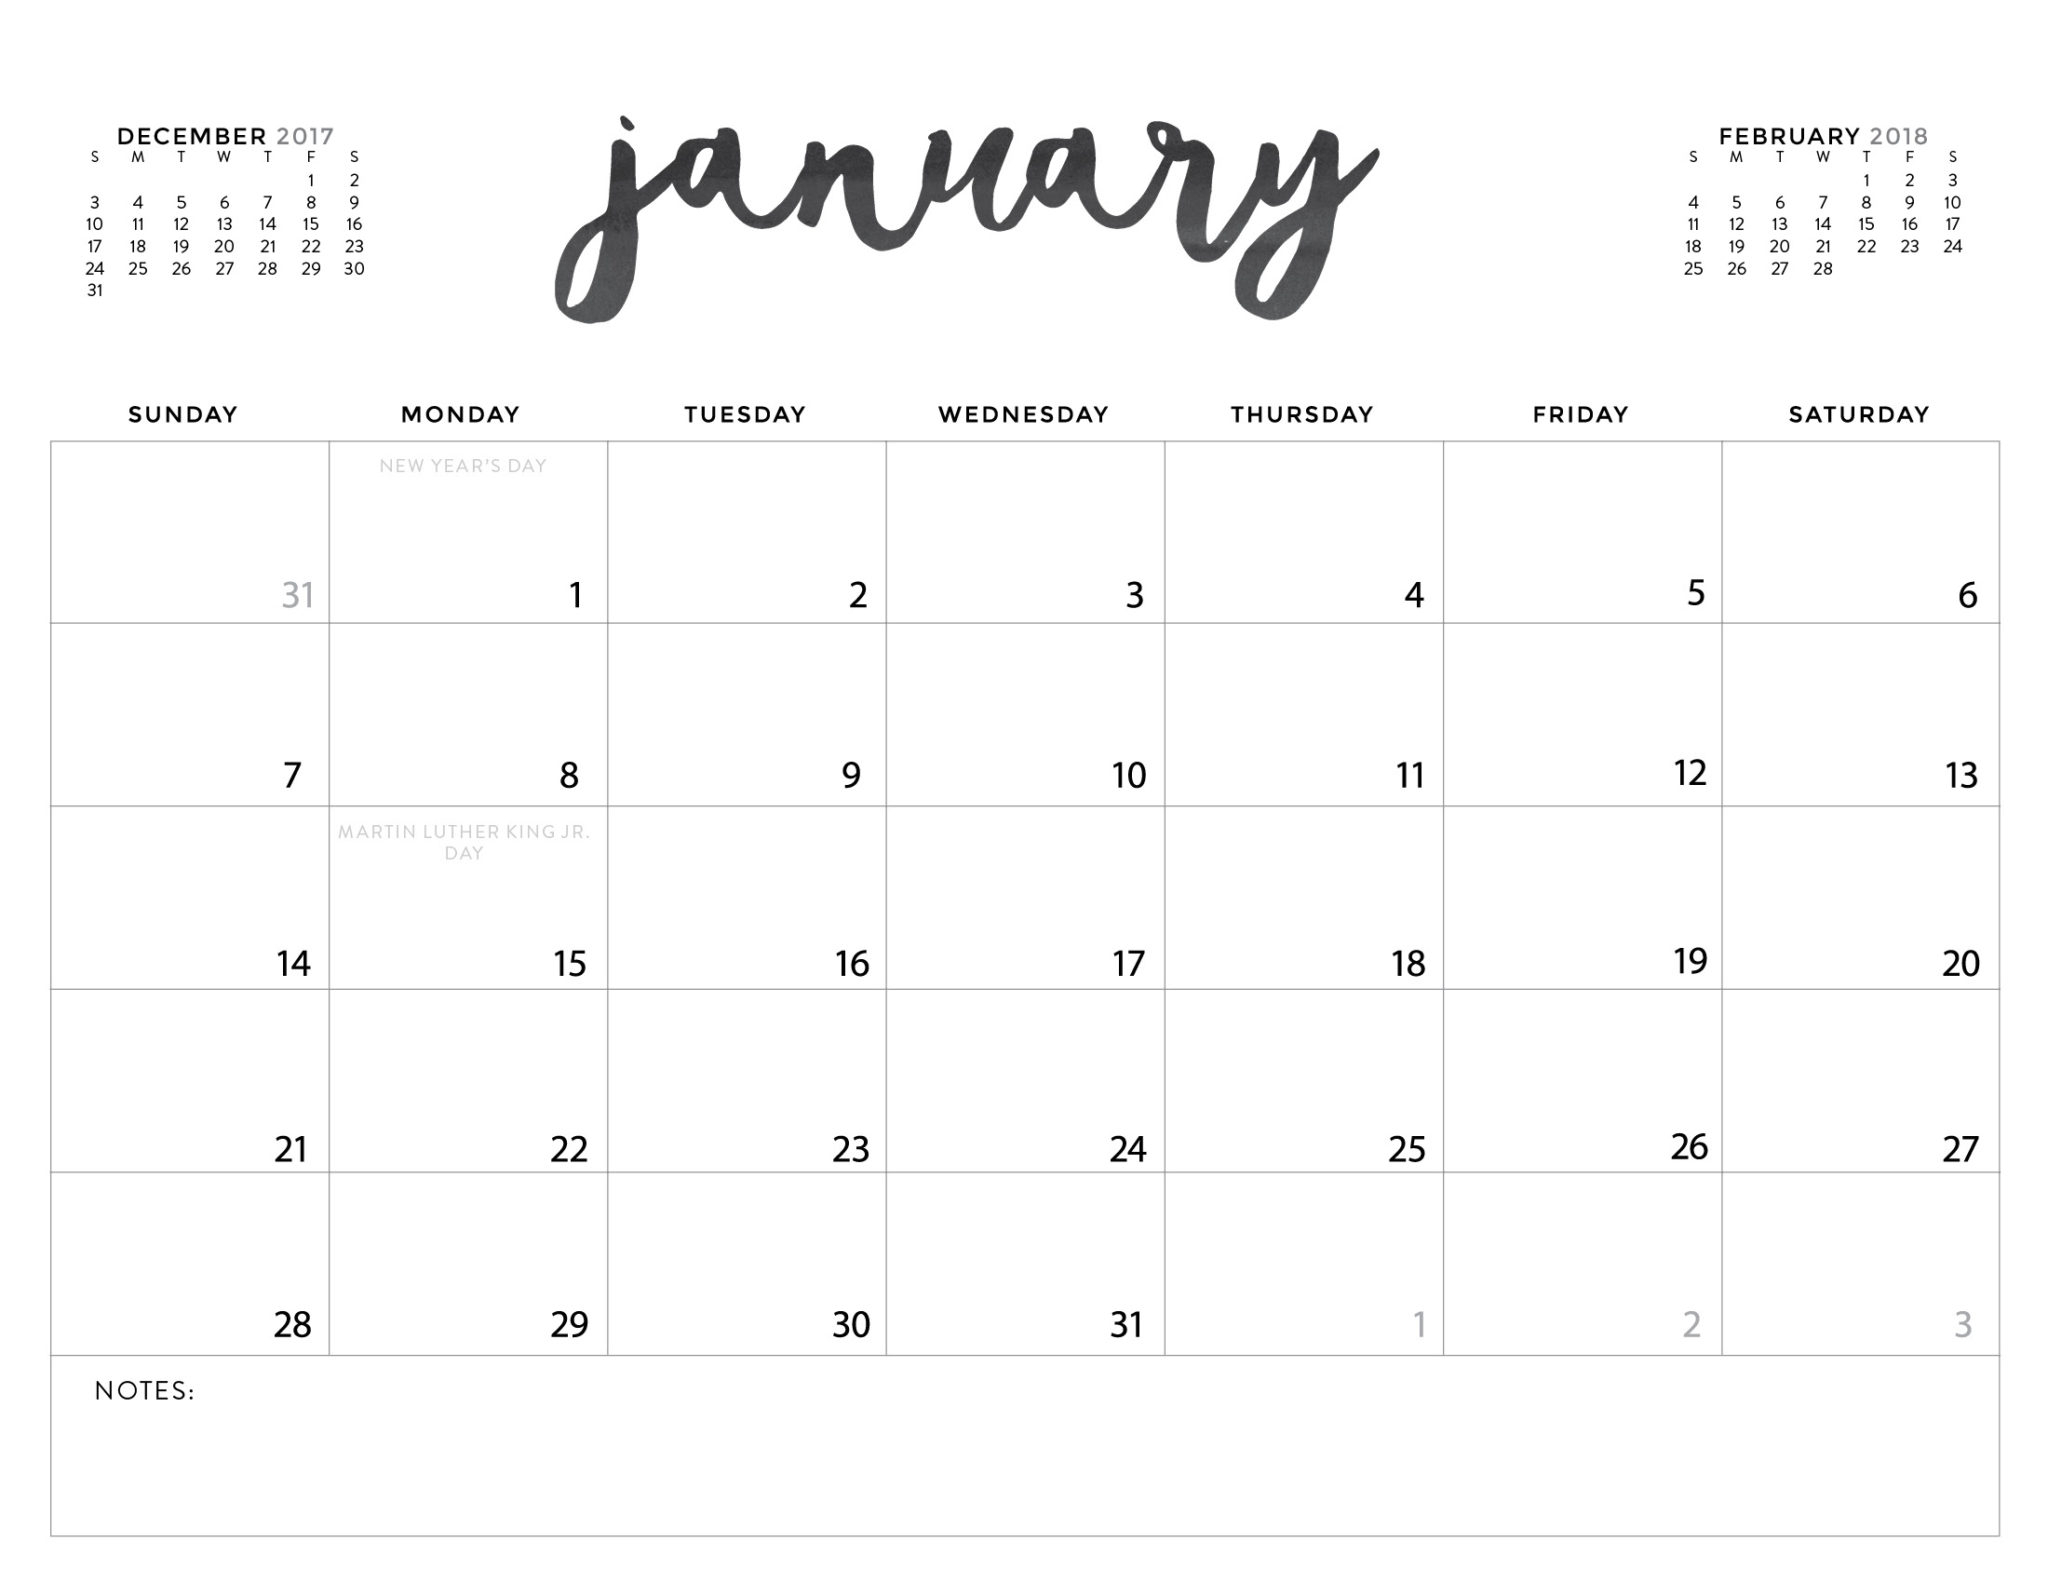 Download Your Free 2018 Printable Calendars Today! There Are 28 inside Calendar Blank Printable Monday Start A4